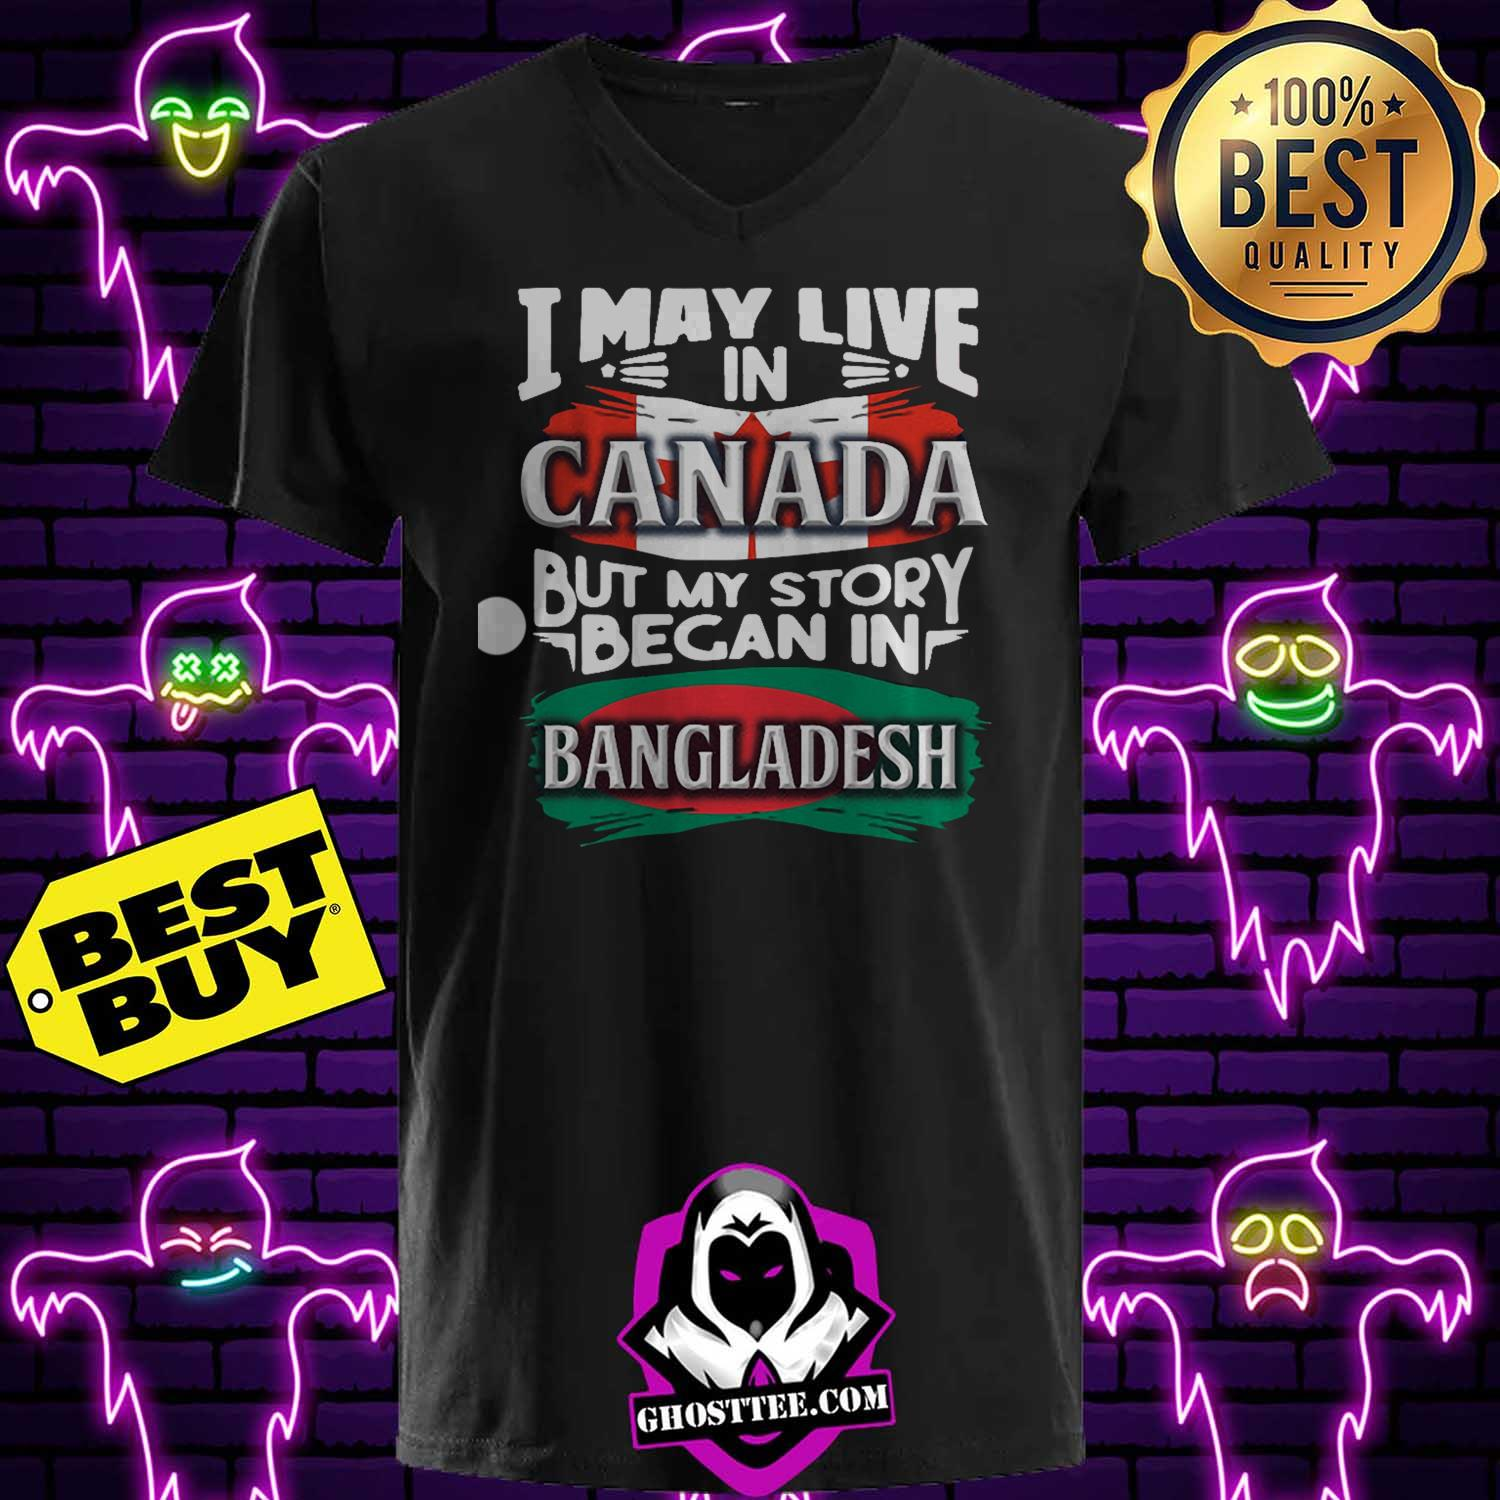 i may live in canada but my story began in bangladesh bengali flag heritage roots ladies tee - I May Live In Canada But My Story Began In Bangladesh Bengali Flag Heritage Roots shirt